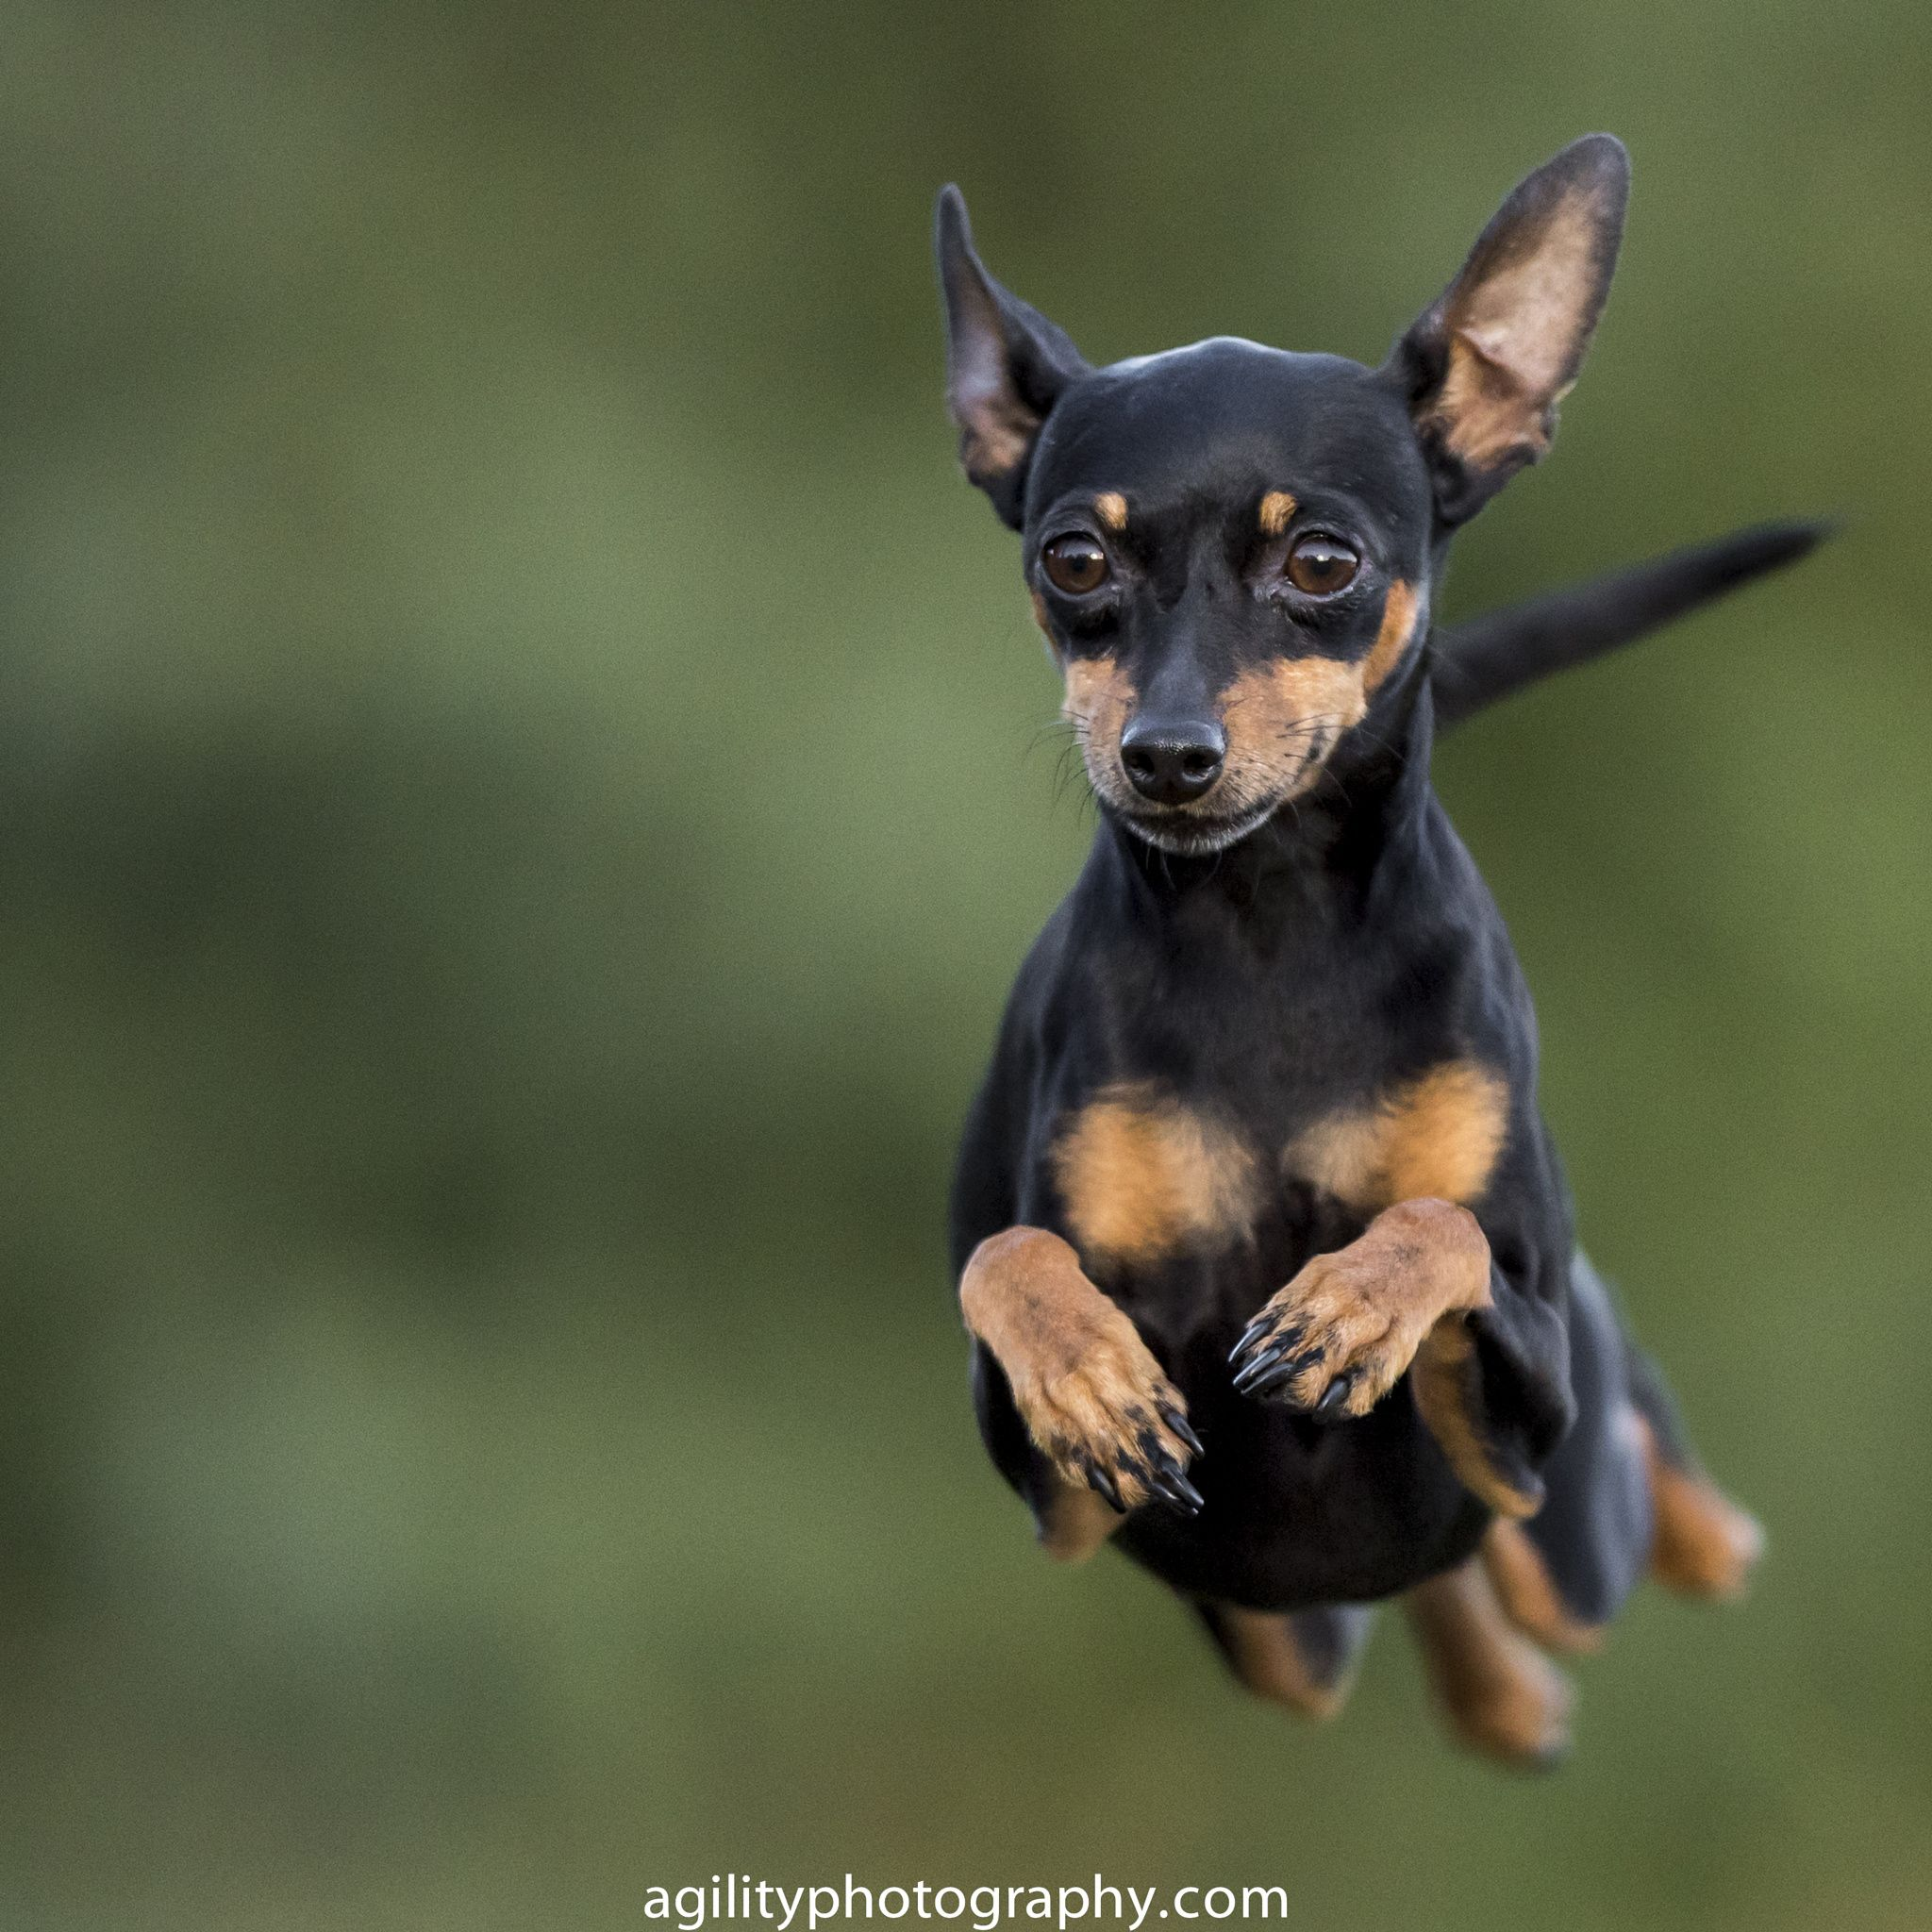 Dog Agility Miniature Pinscher Dog Agility Dogs Dog Shedding